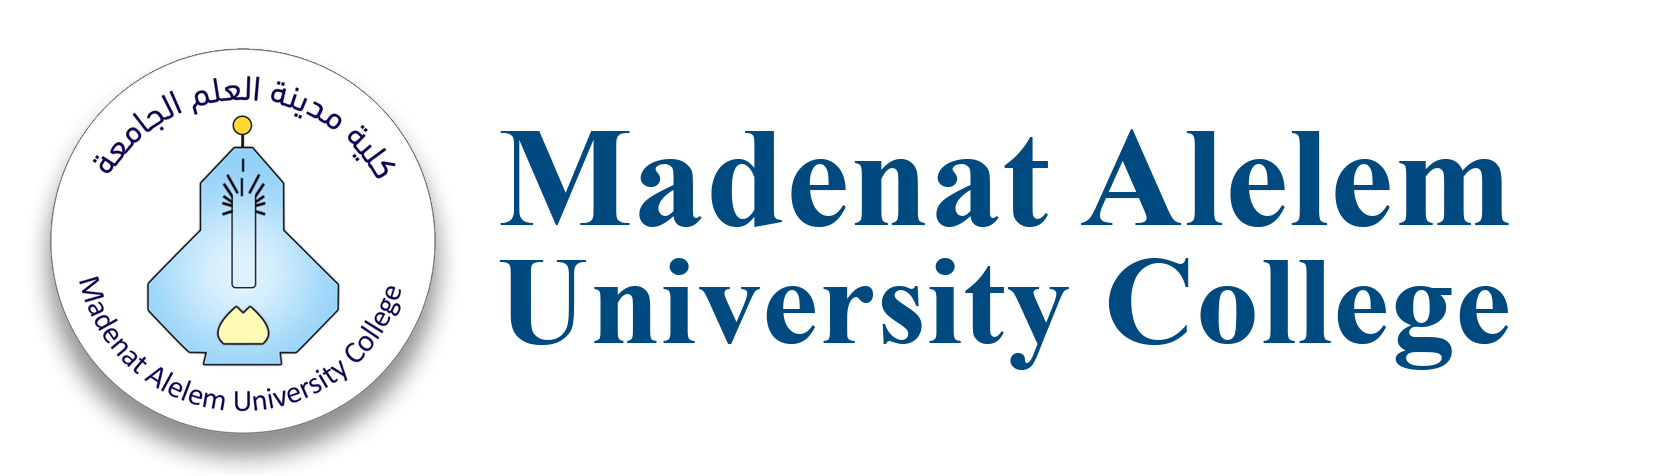 Madenat Alelem University College